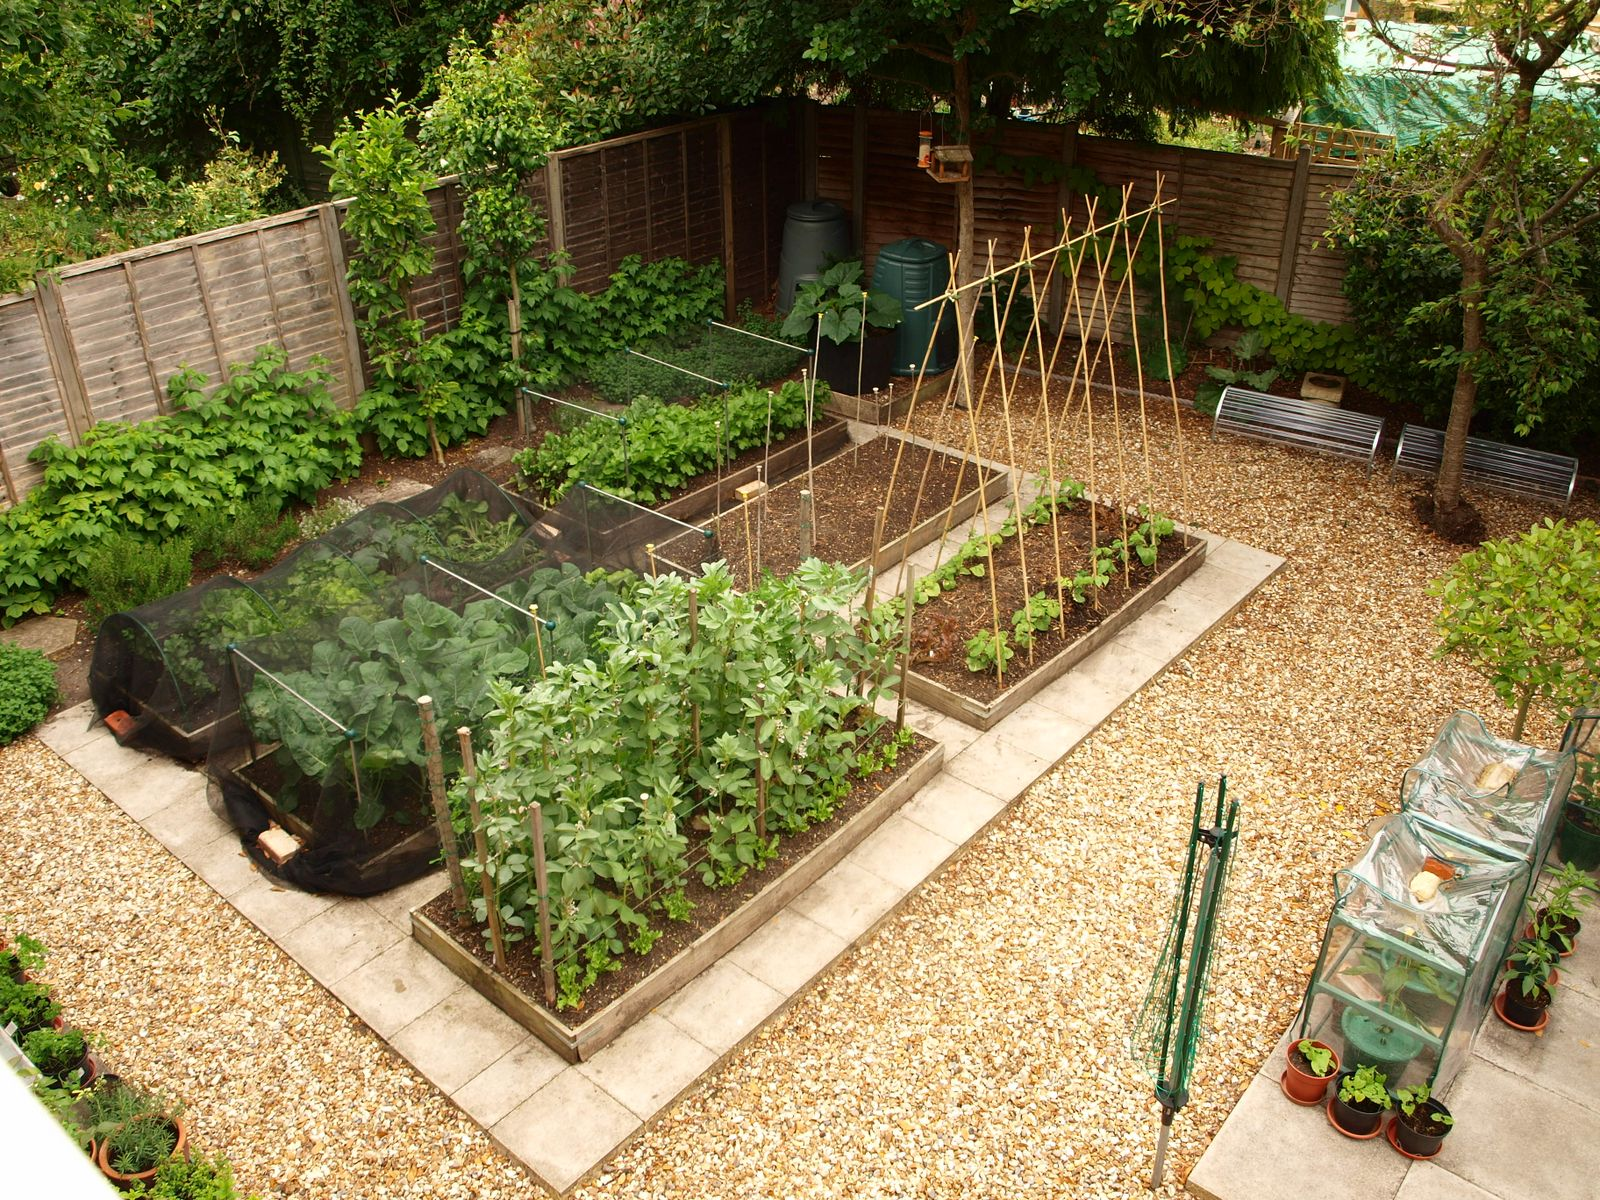 garden plot ideas perfect home and garden design ForGarden Plot Designs